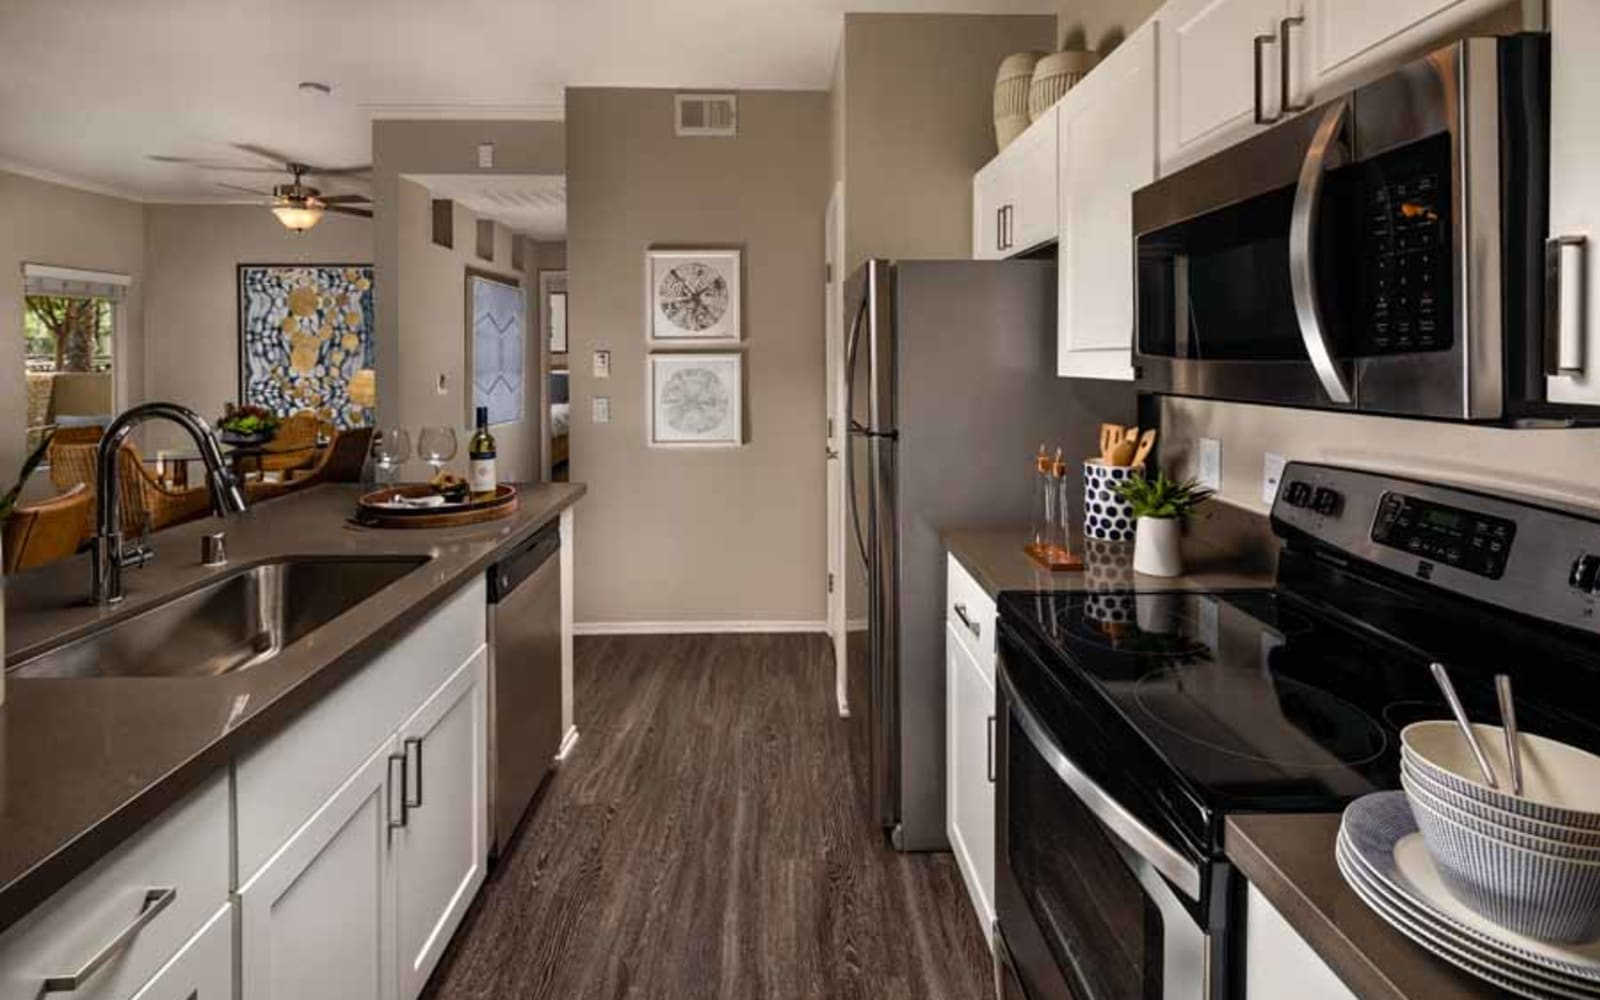 An apartment kitchen with plenty of counter space at Castlerock at Sycamore Highlands in Riverside, California